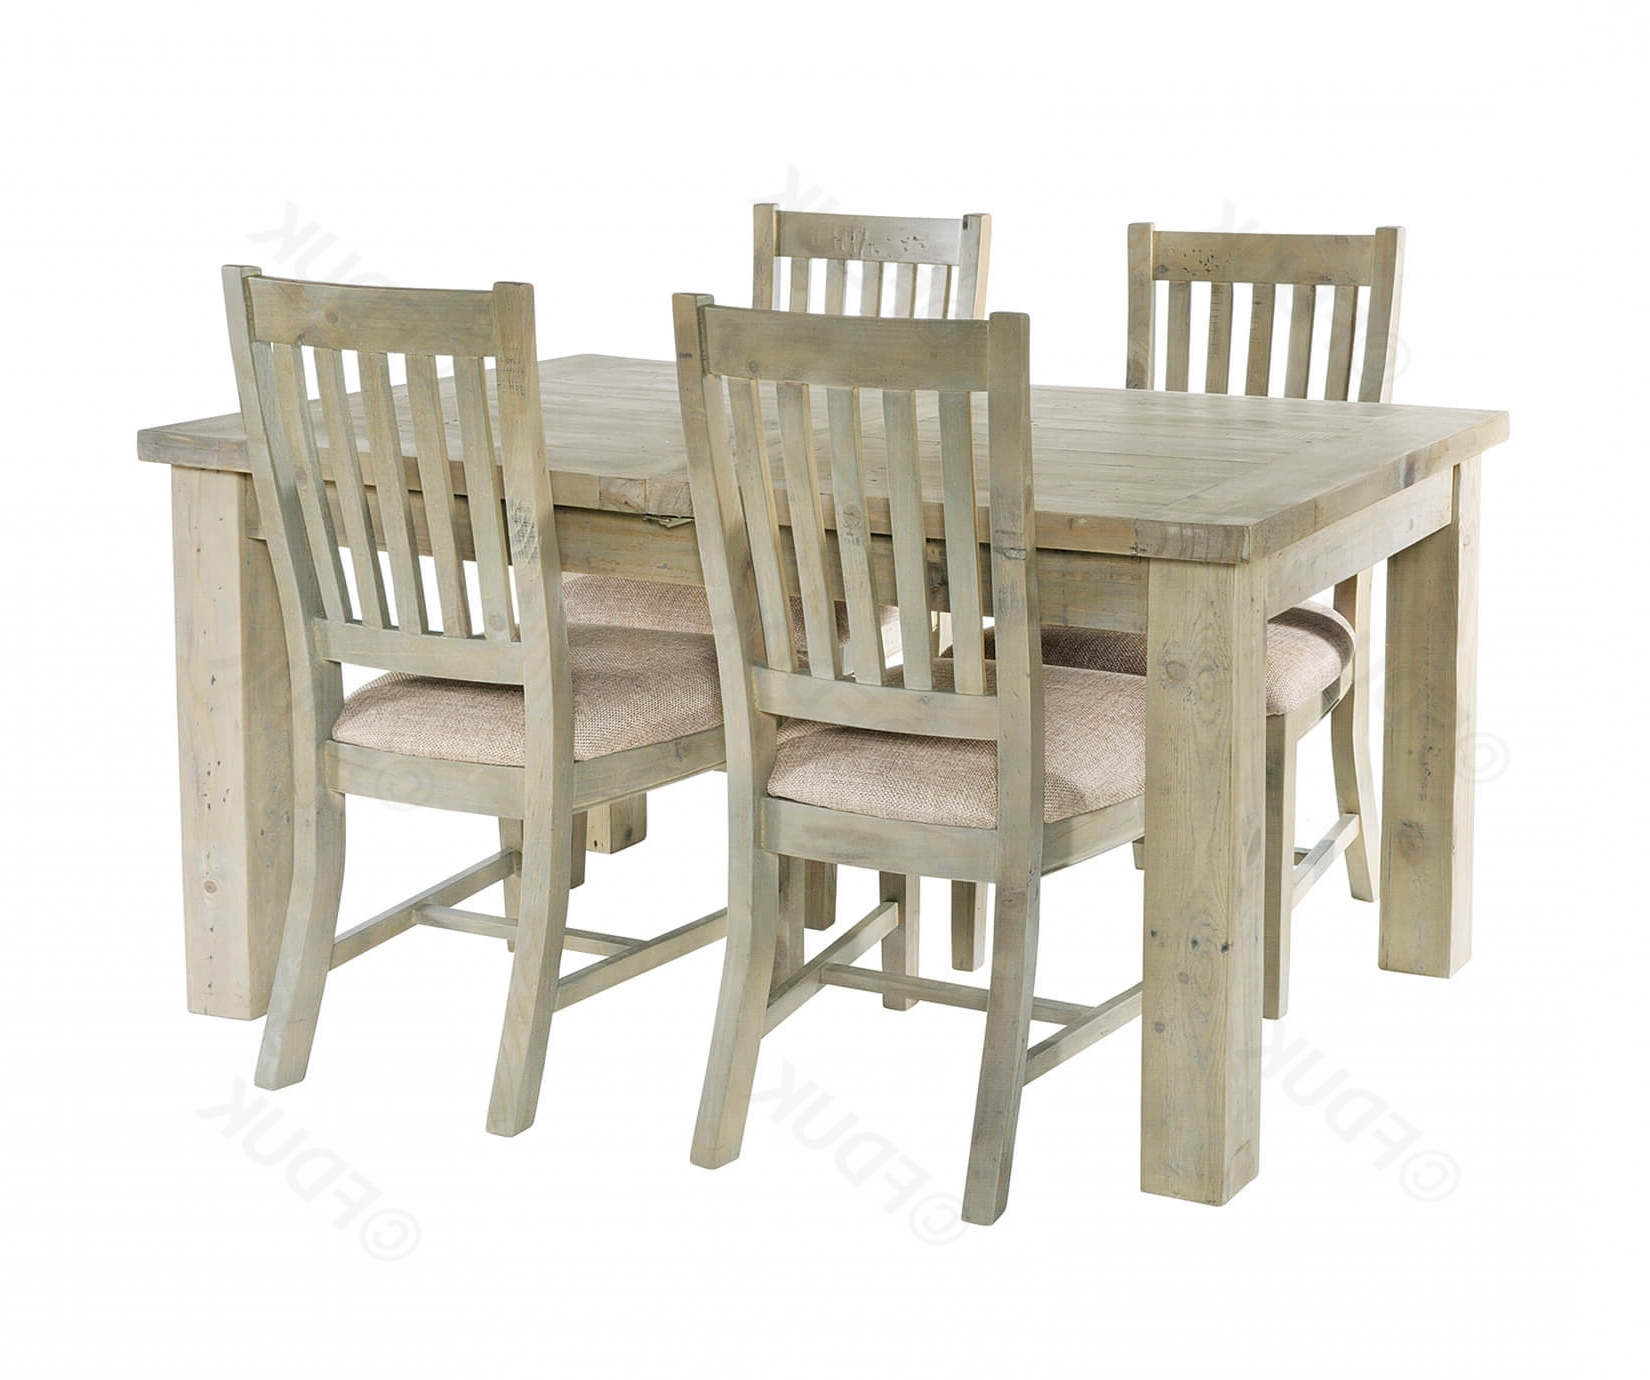 Saltash Small Extending Dining Table With 4 Chairs Throughout Small Extending Dining Tables And 4 Chairs (View 4 of 25)